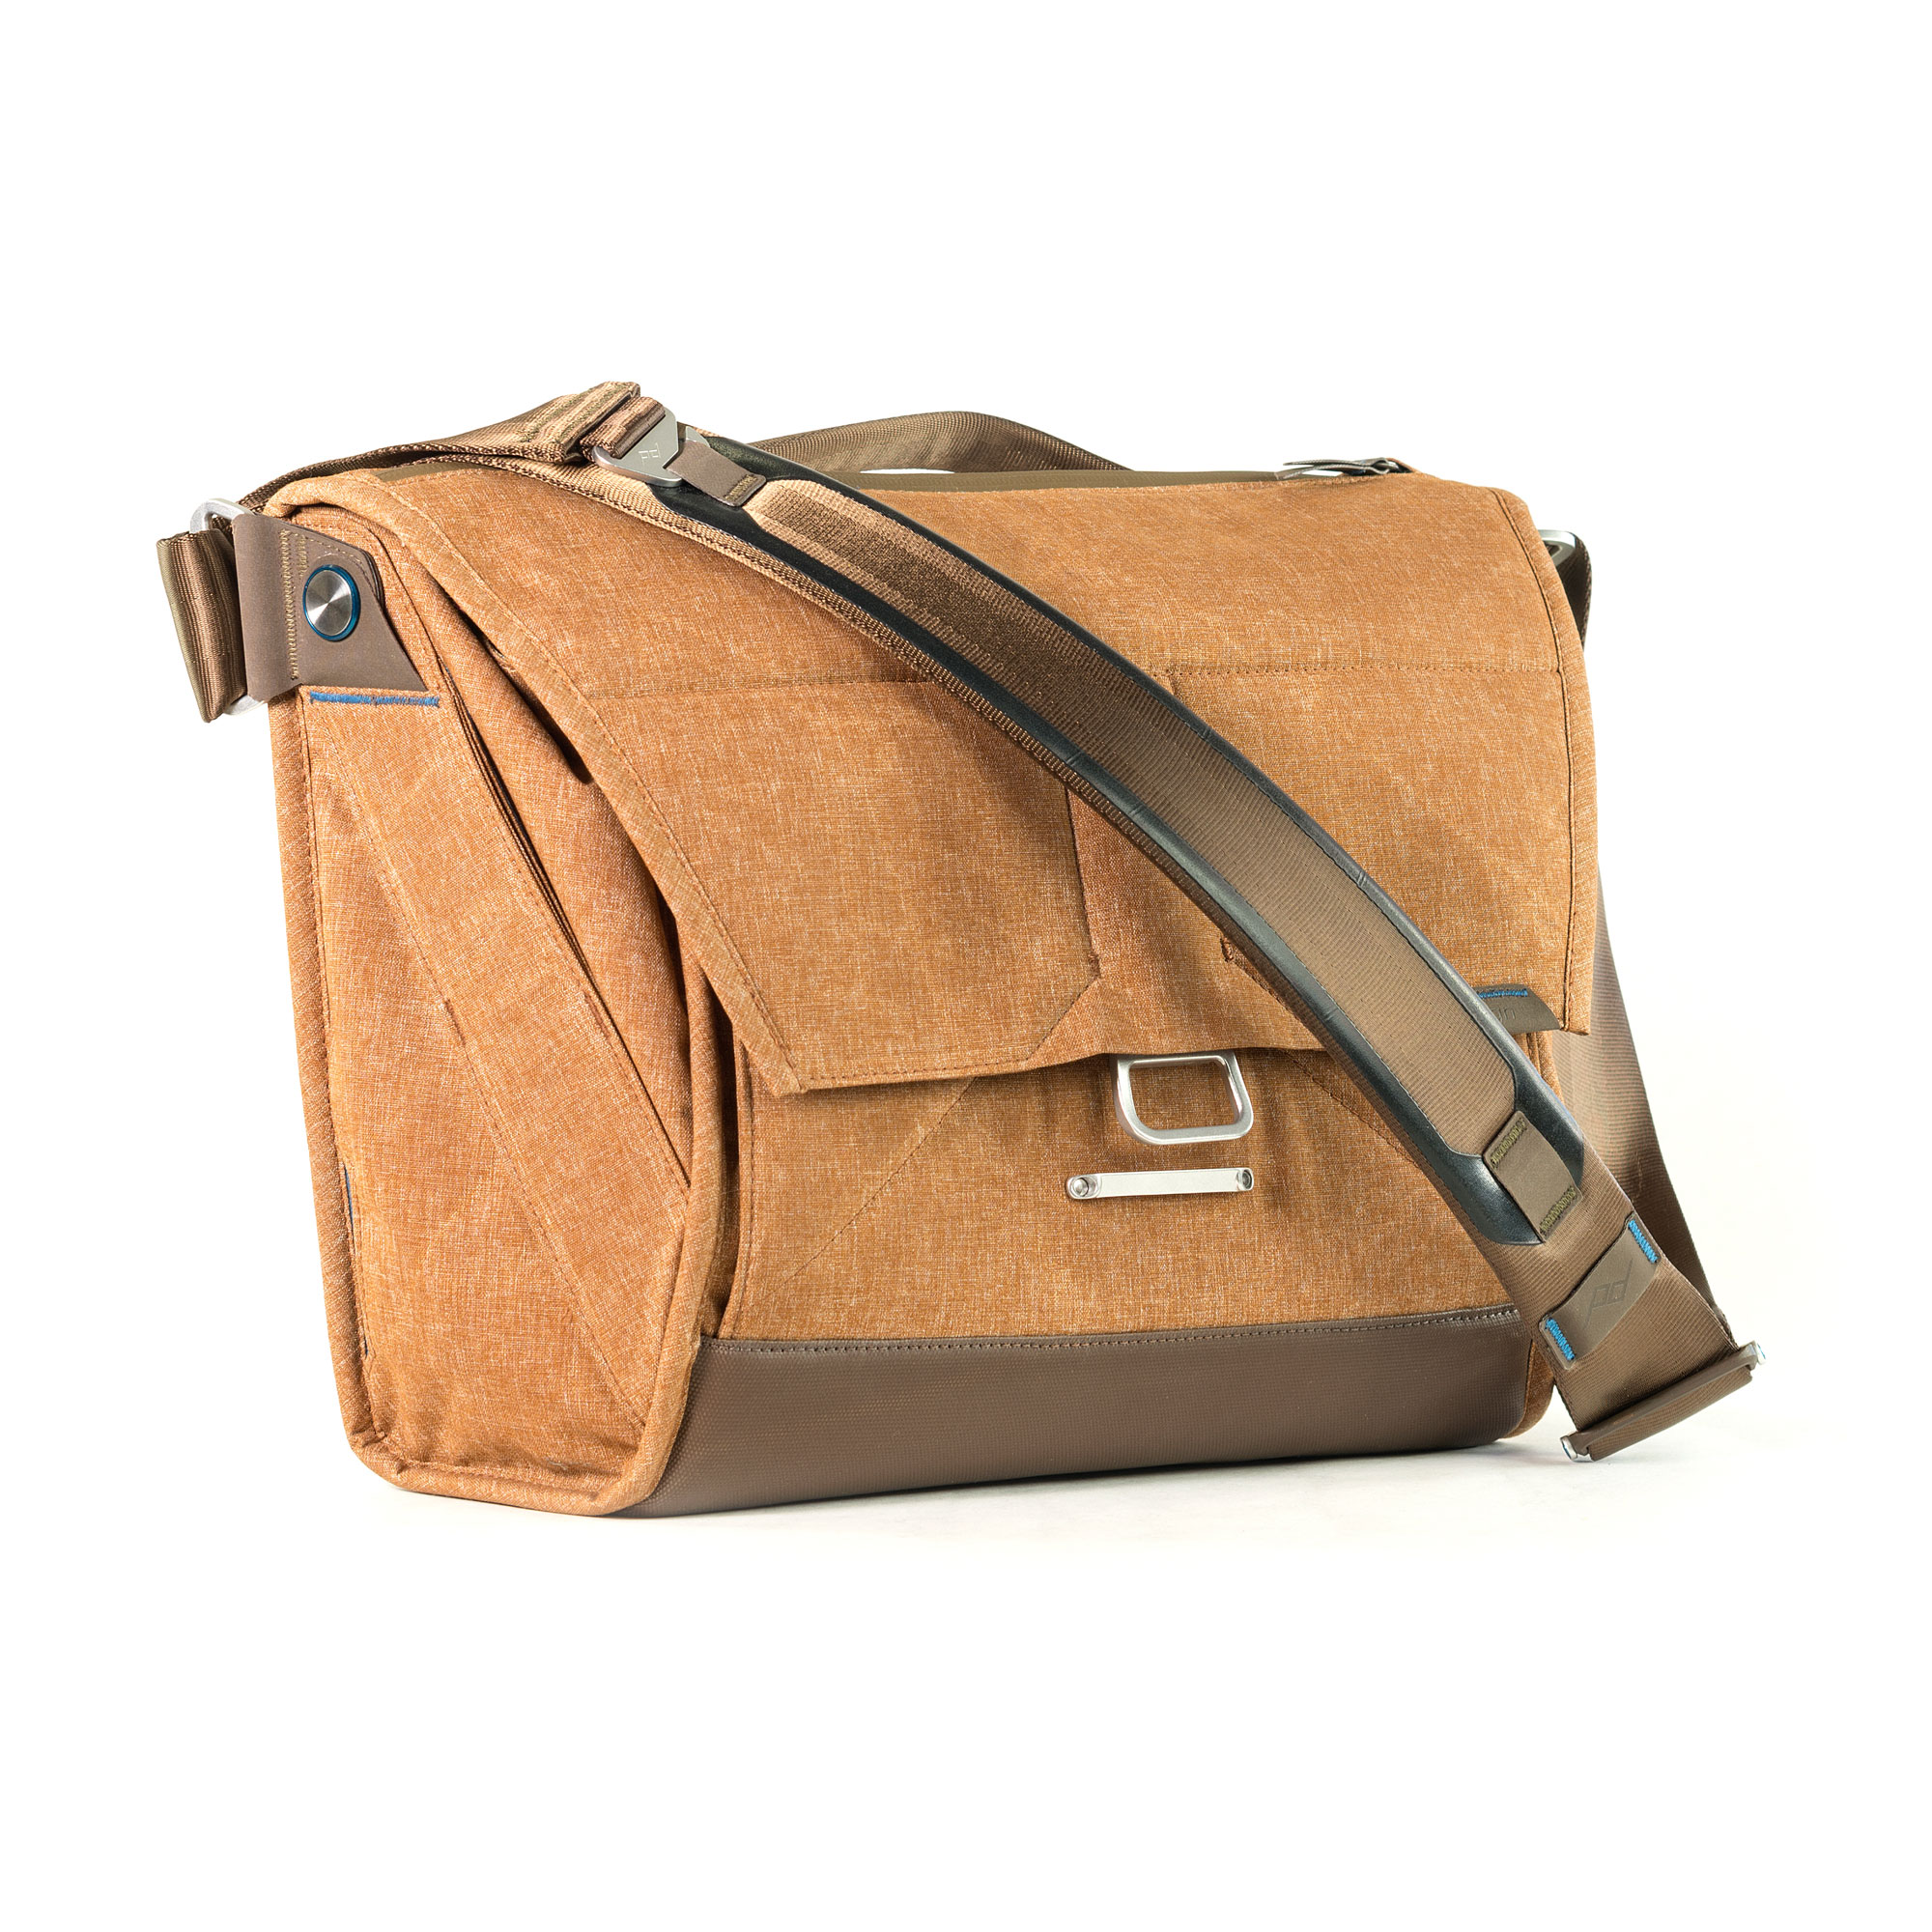 13 In. Everyday Messenger Heritage Tan